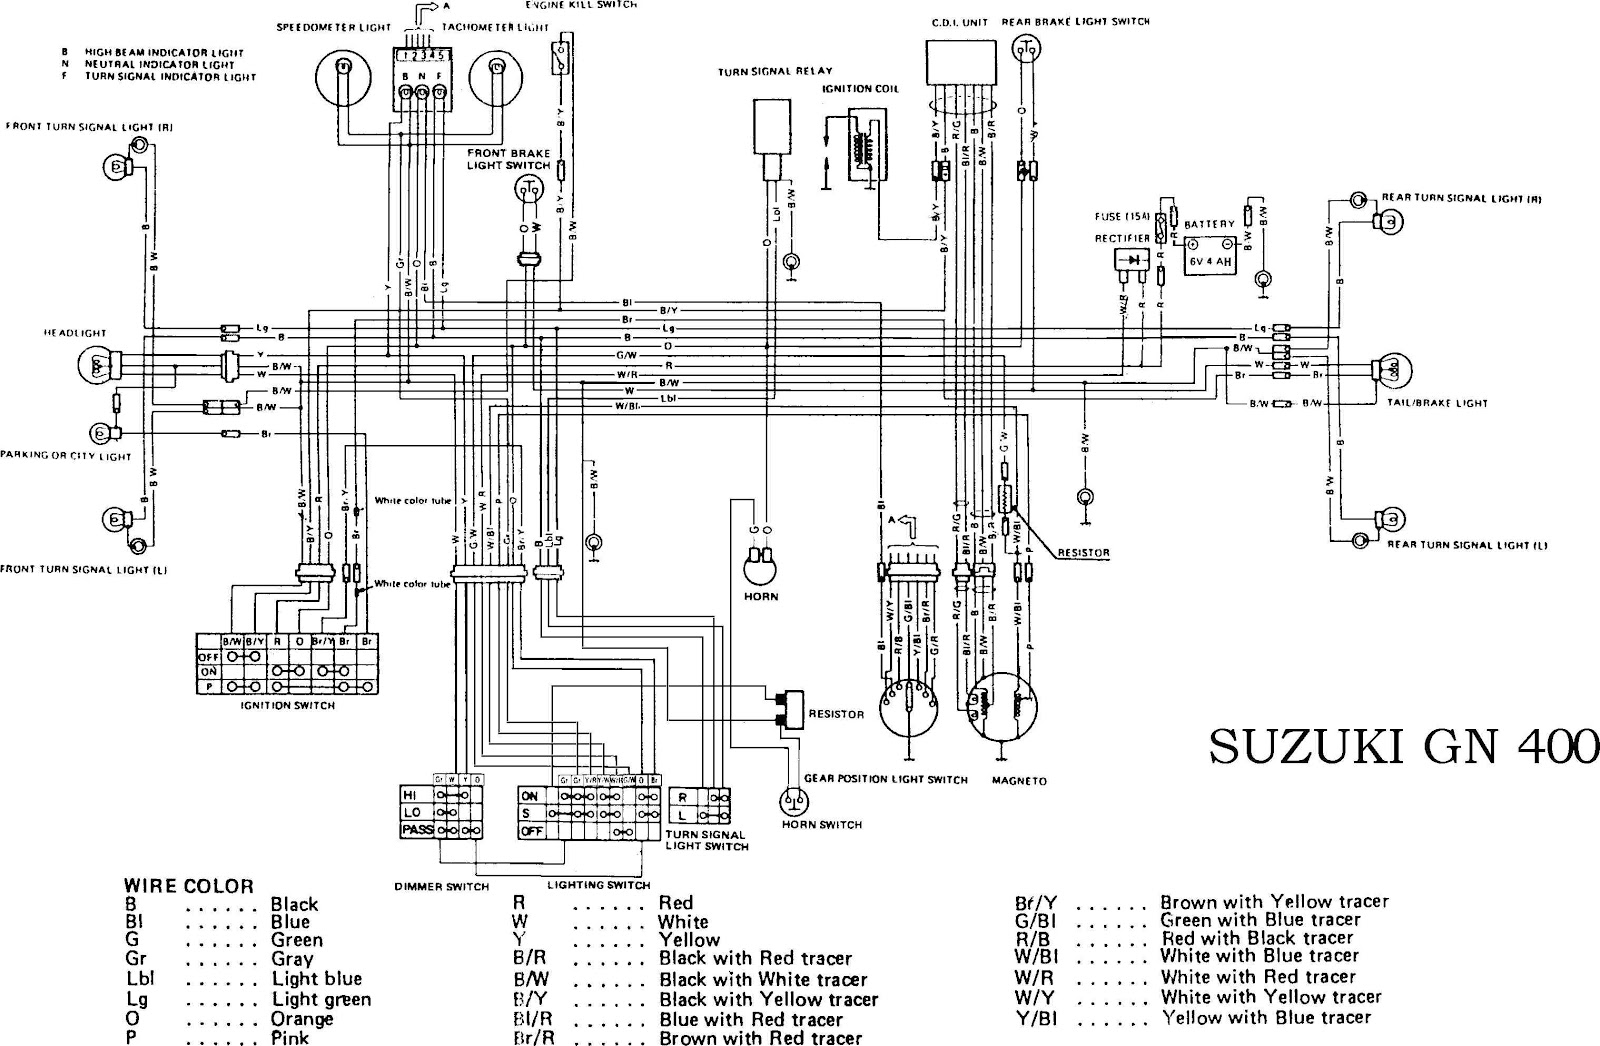 [DOC] Diagram 2001 Suzuki Gsxr Wiring Diagram Ebook